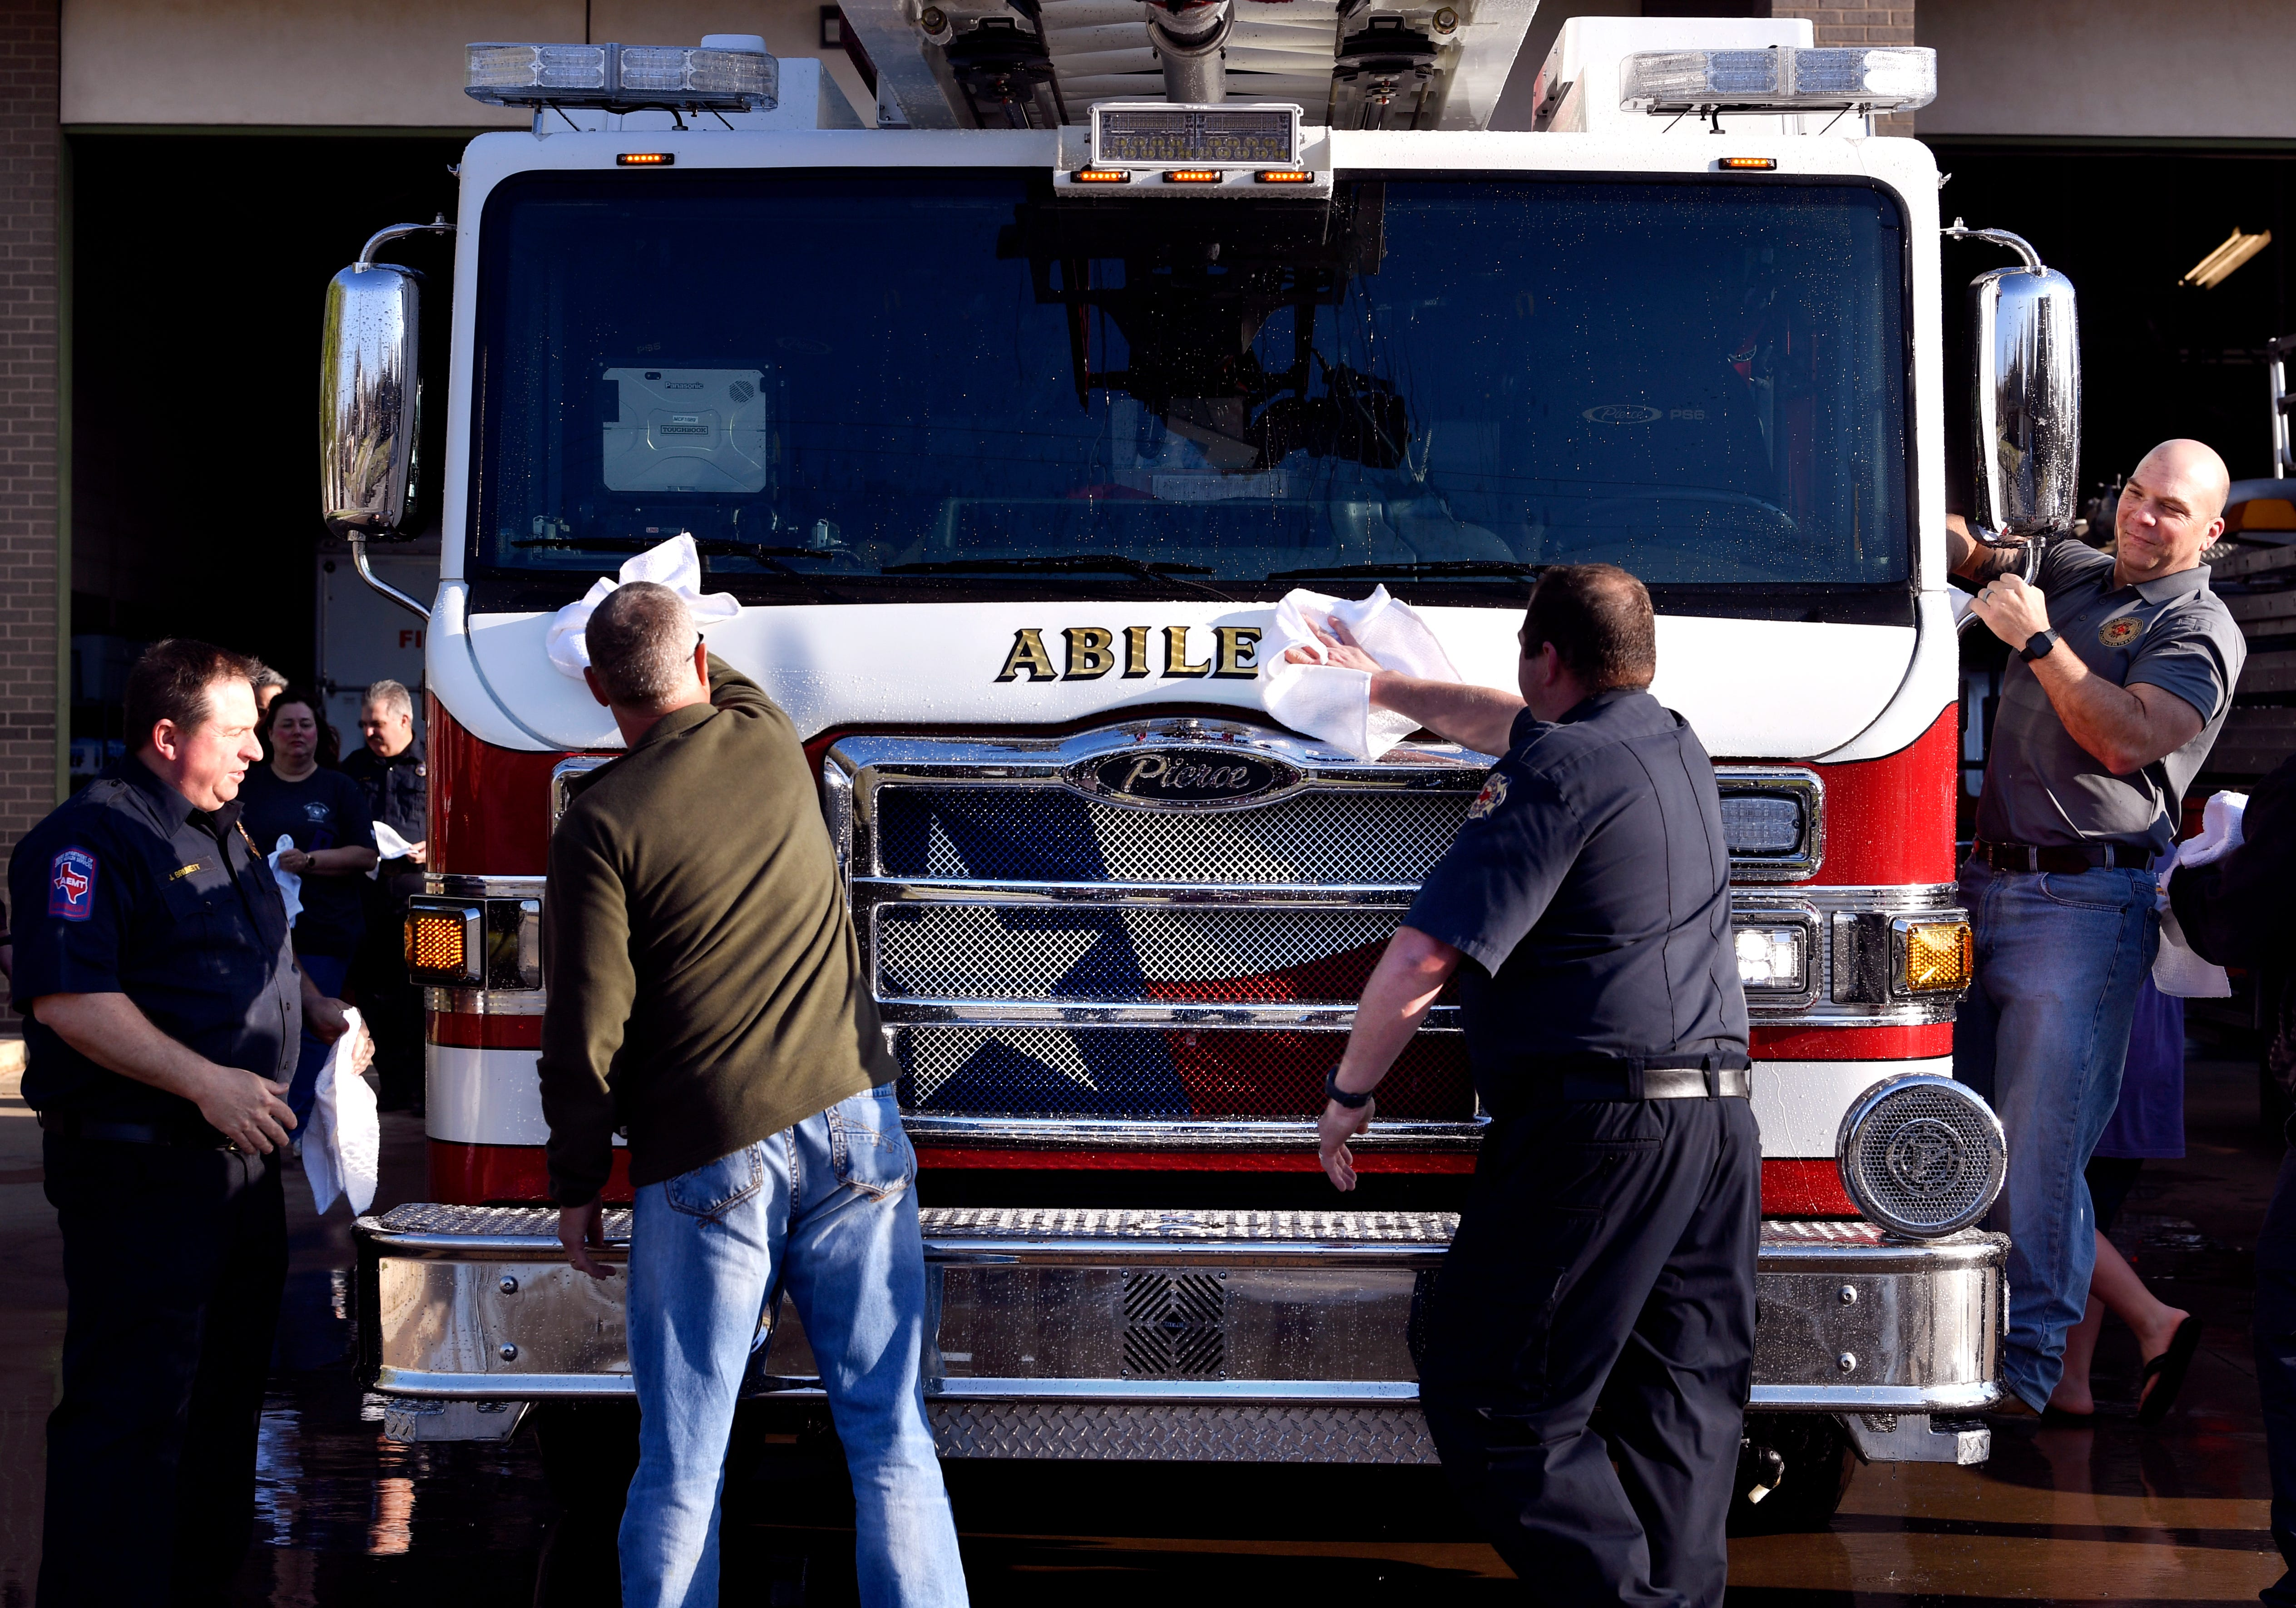 Abilene firefighters and guests wipe Ladder 5 at Station No. 5 during a welcoming ceremony for the new equipment Saturday morning. The truck, a Pierce Ascendant, features a remote-controlled nozzle and LED lighting along the 100-foot ladder.